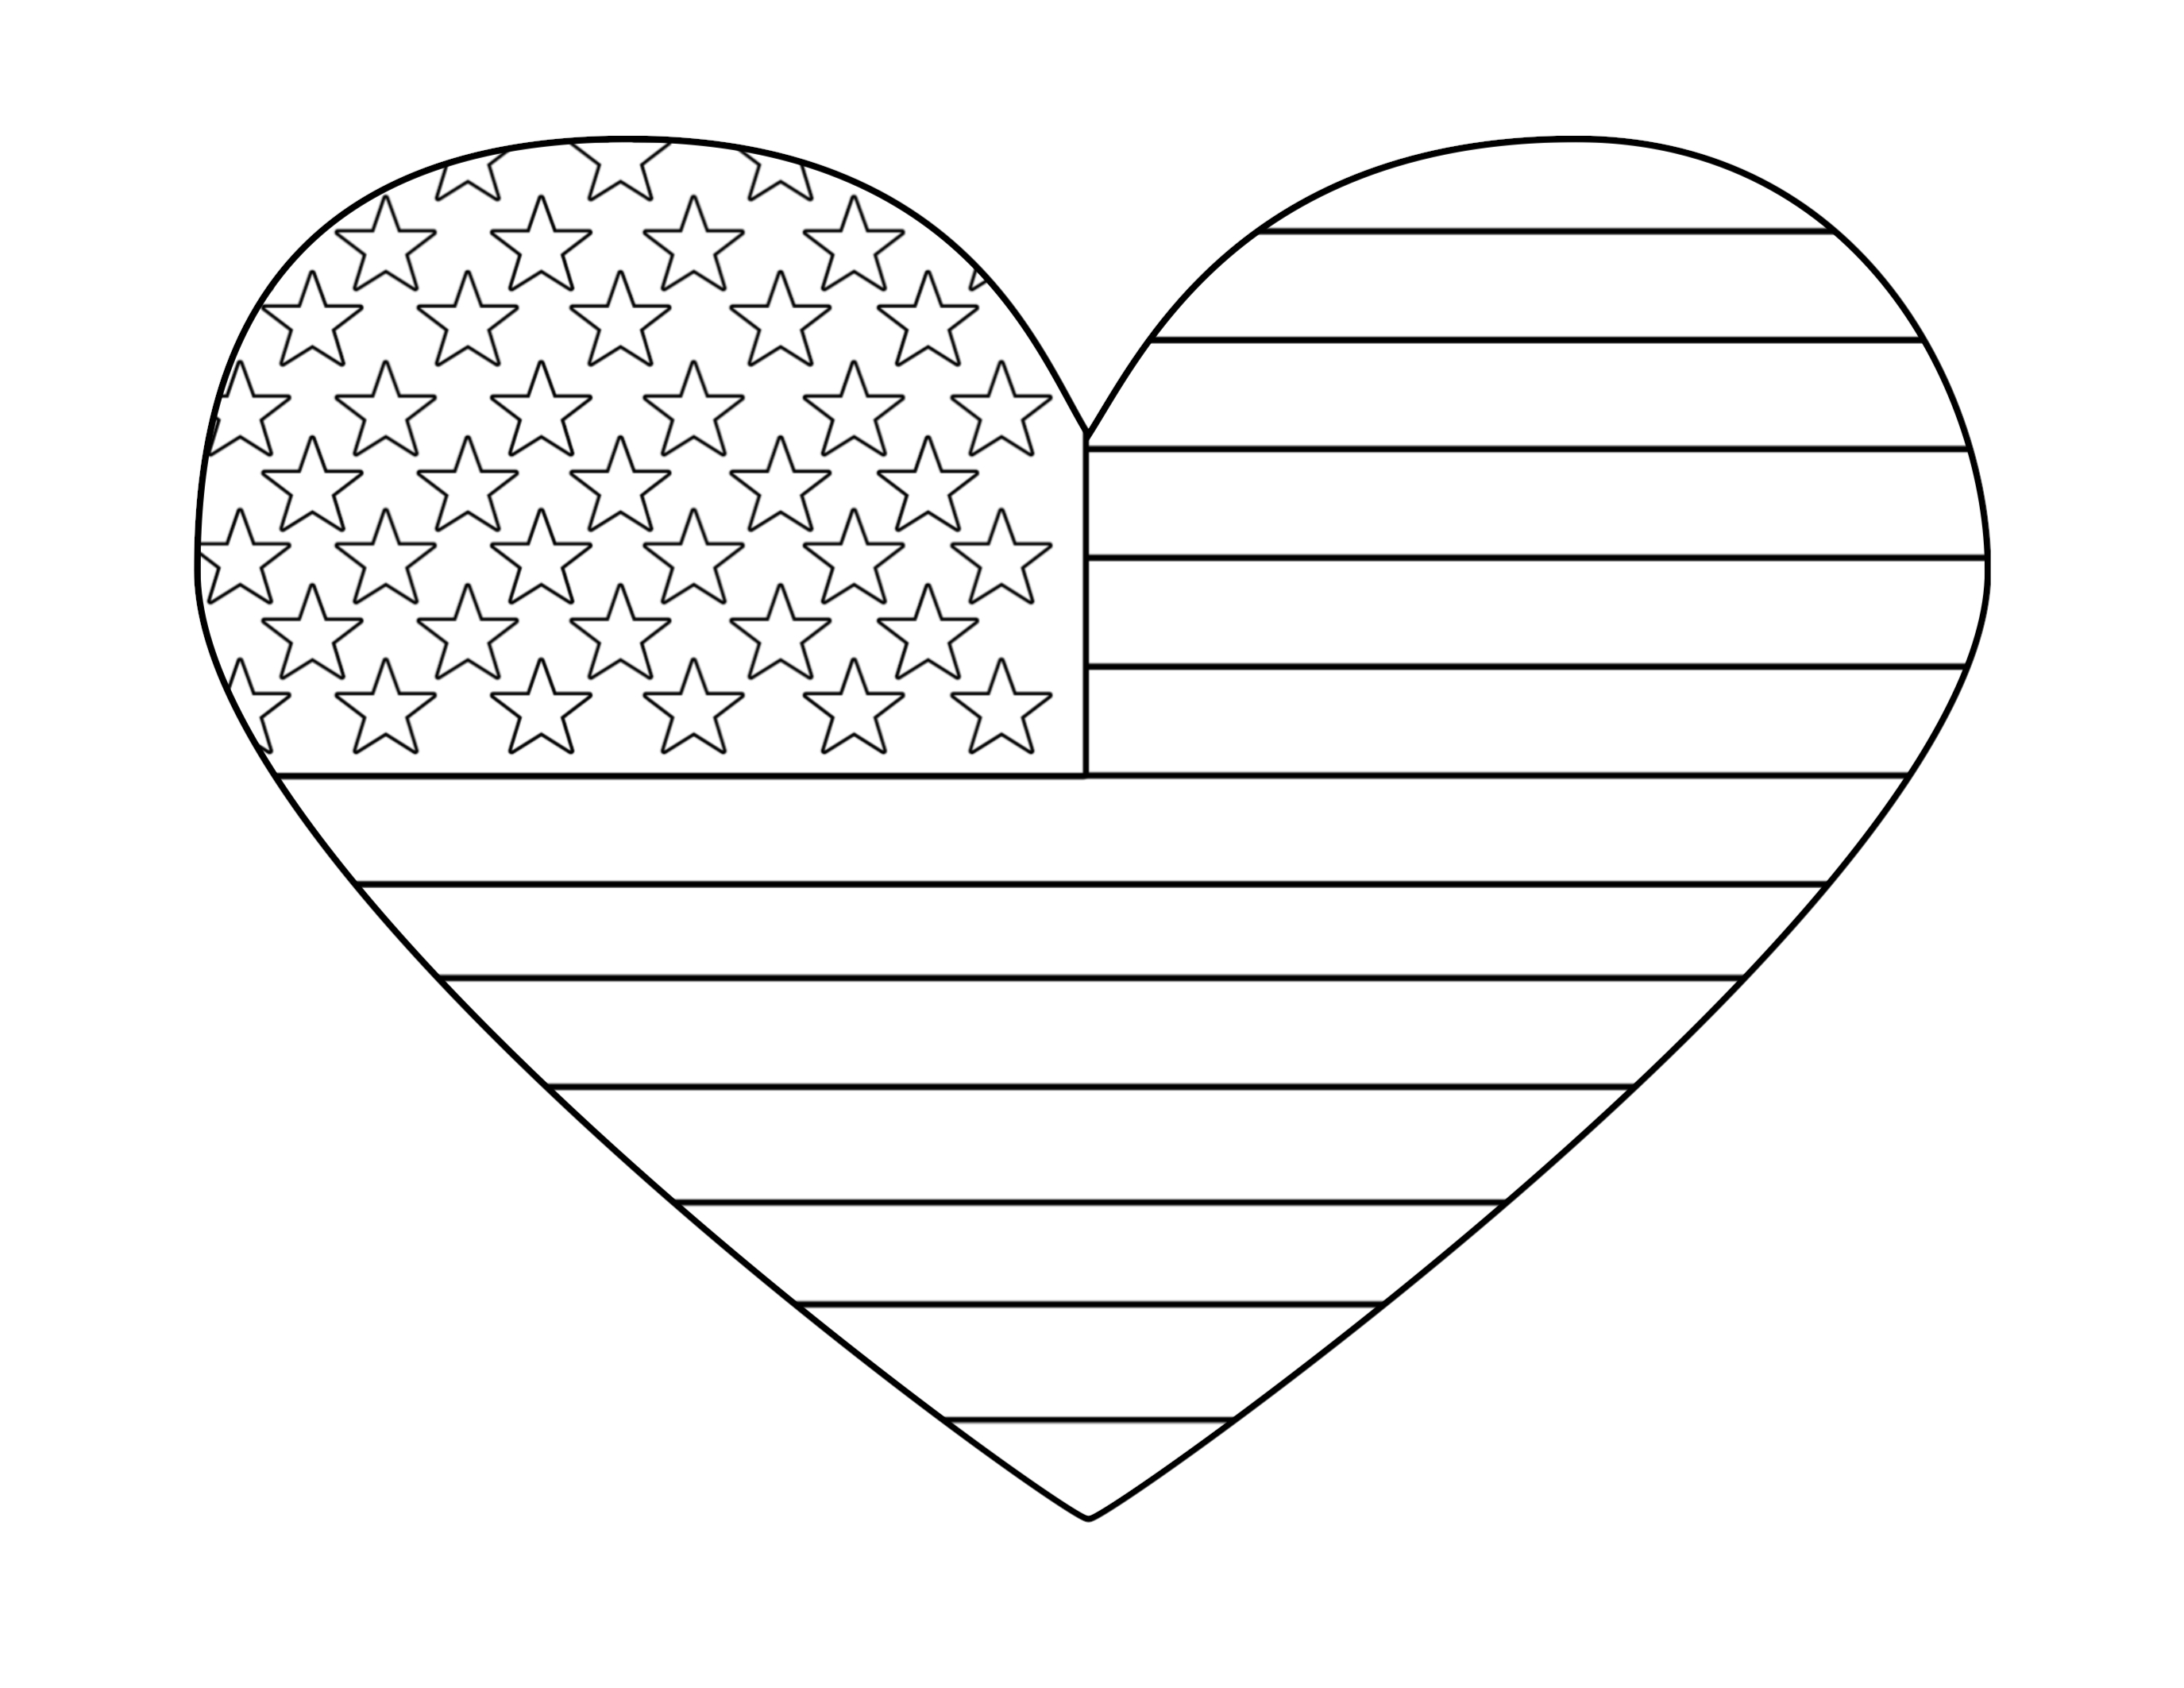 flag heart coloring page american flag heart coloring pages holiday 4th of july page heart coloring flag